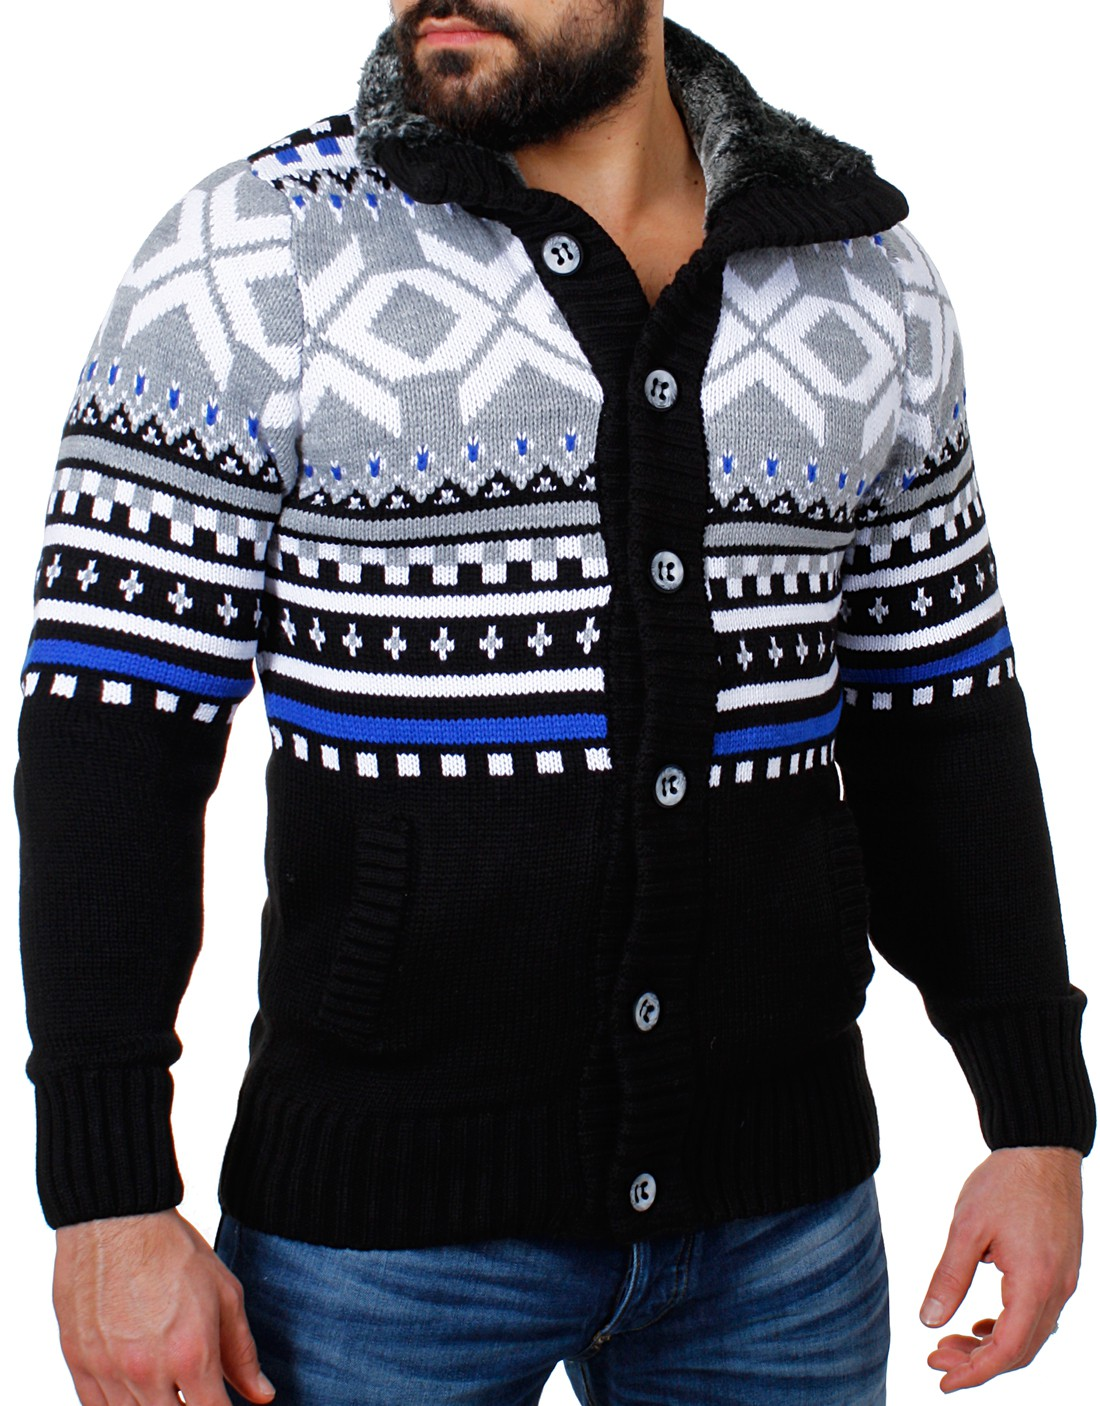 carisma herren strickjacke norwegerpullover strickpullover mit knopfleiste 7011 ebay. Black Bedroom Furniture Sets. Home Design Ideas